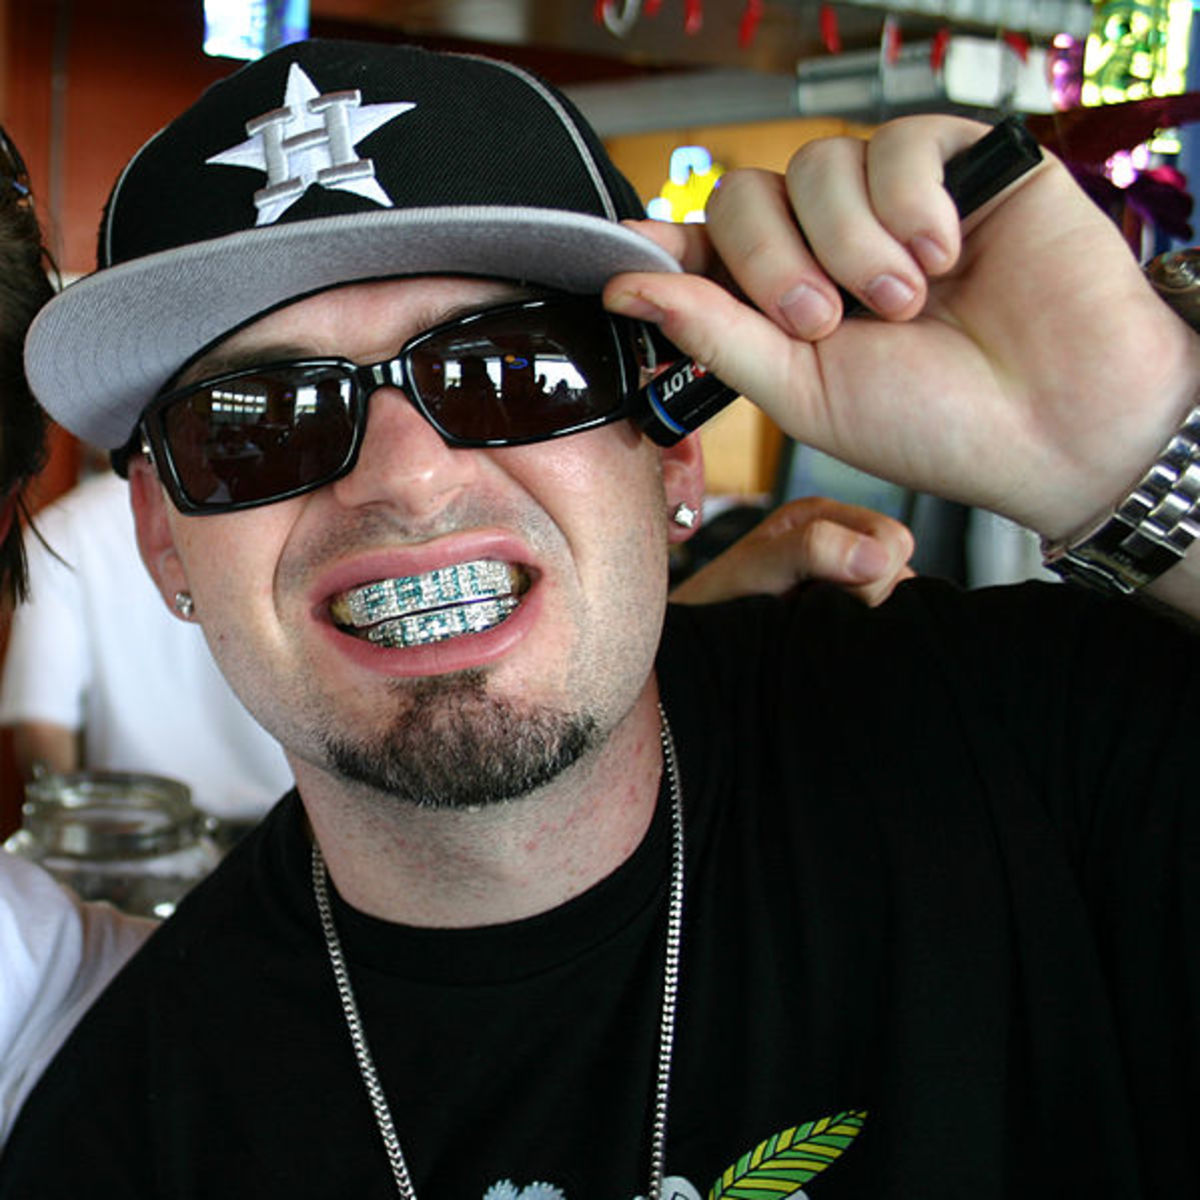 Paul Wall's $30,000 platinum & diamond grillz